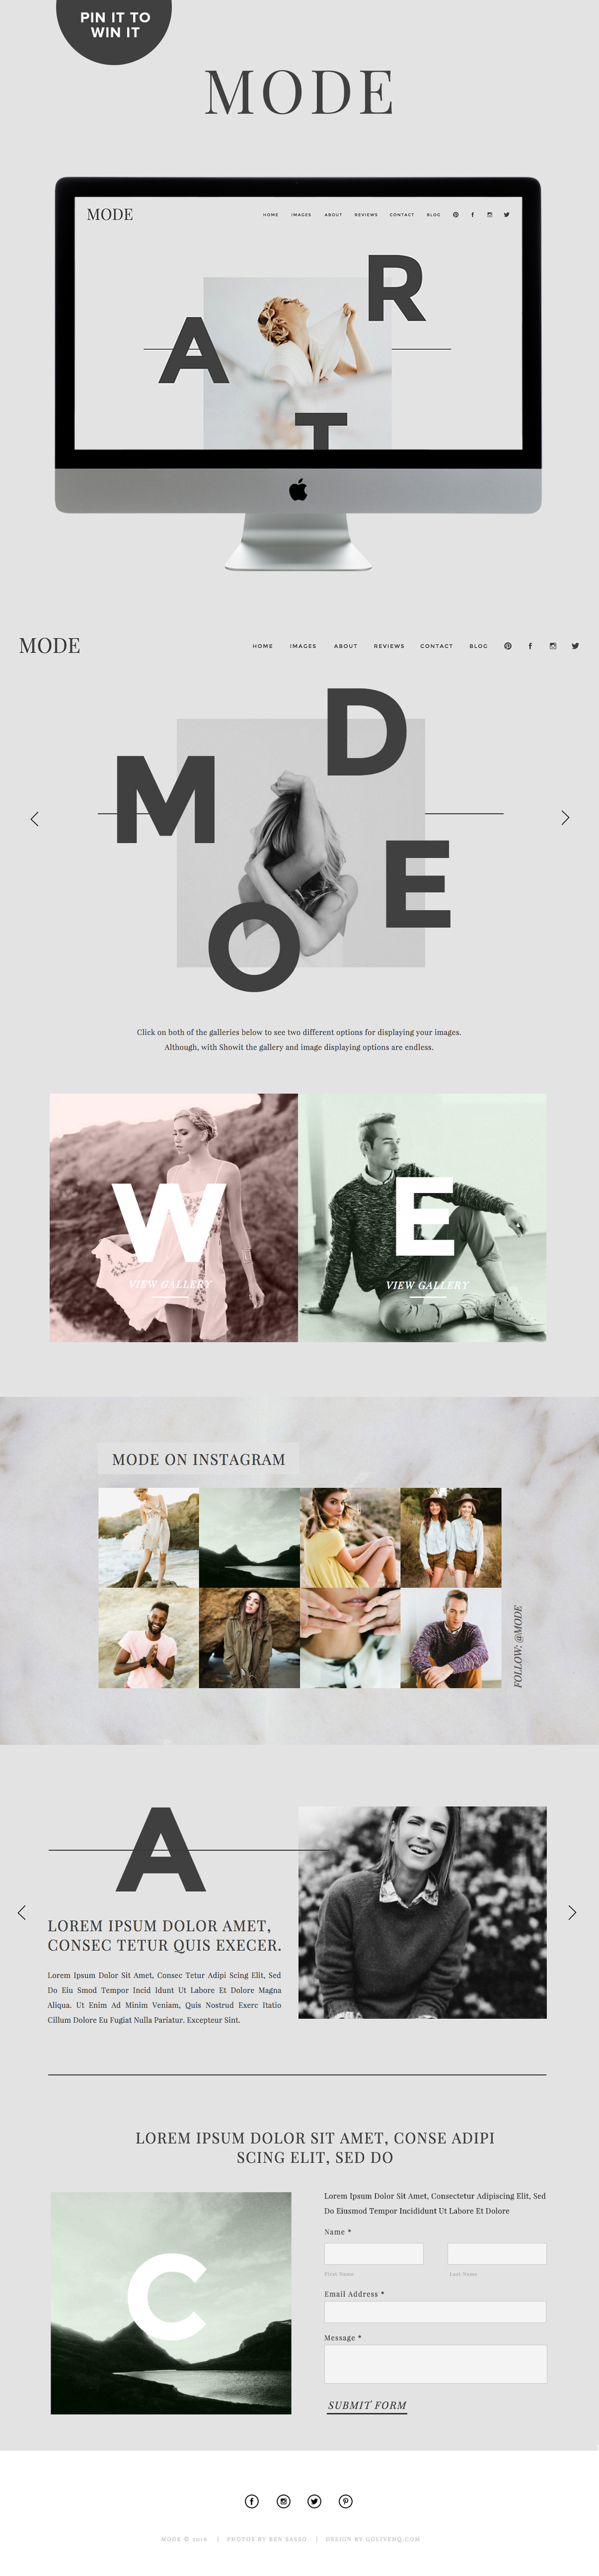 Showit5 website theme inspiration | by GOLIVEHQ.CO